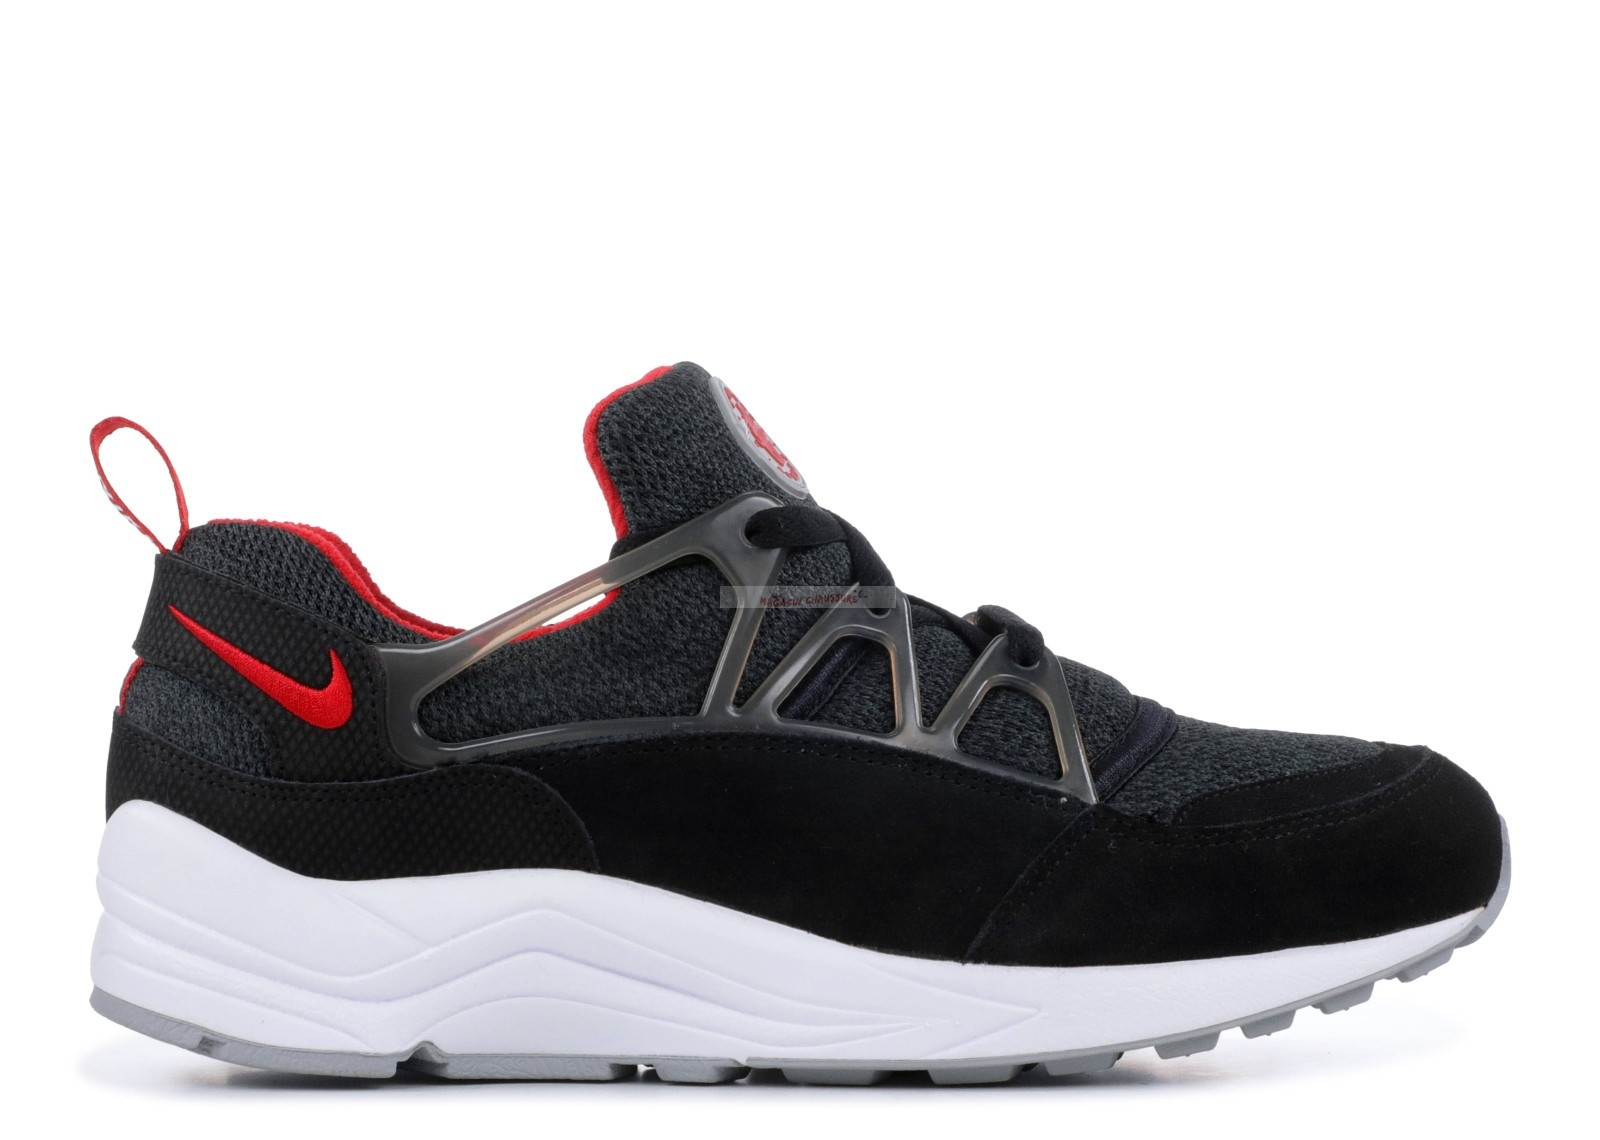 Nike Air Huarache Light Noir Rouge Gris (306127-006) Chaussure de Basket